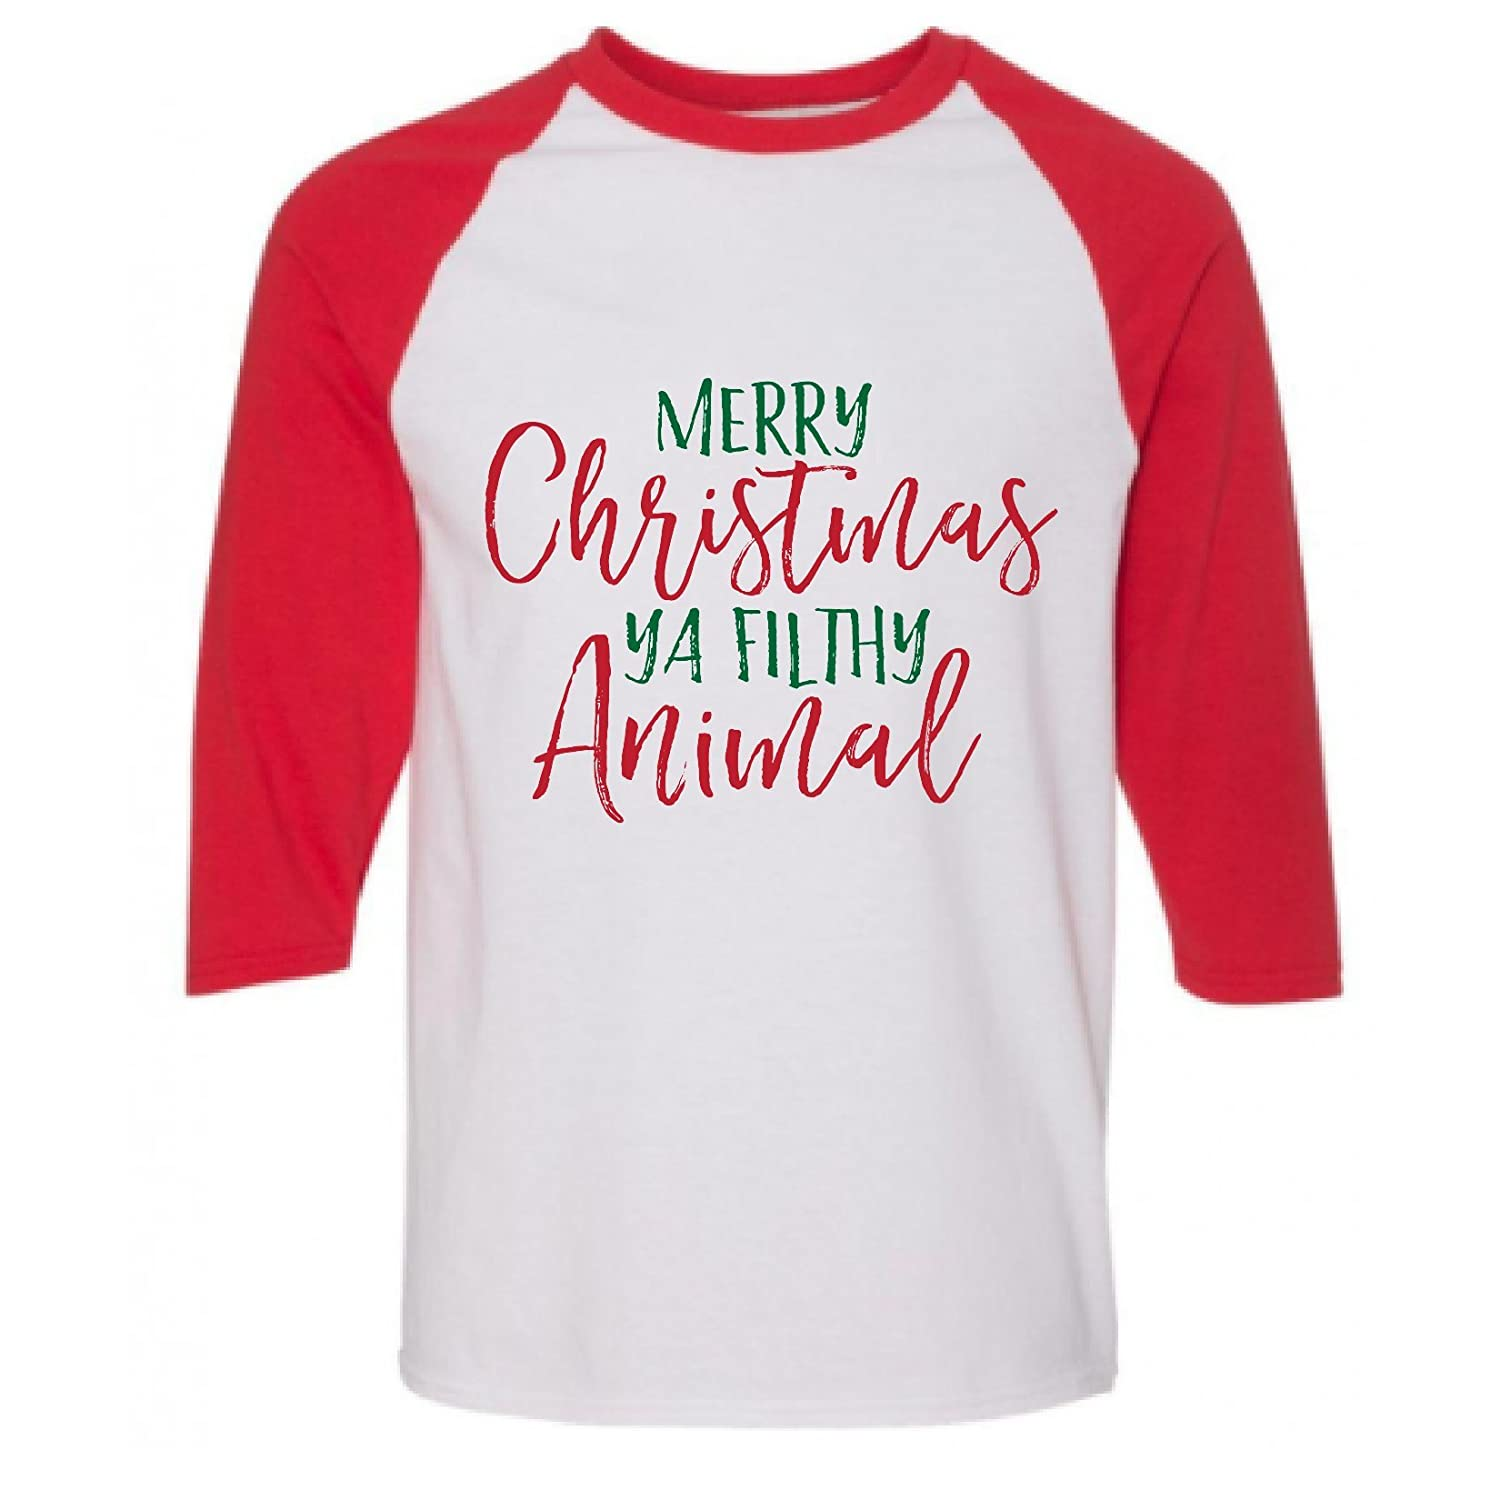 881ae8ce Amazon.com: Jasmine and Marigold Merry Christmas Ya' Filthy Animal Christmas  Festive Holiday Raglan Shirt: Clothing